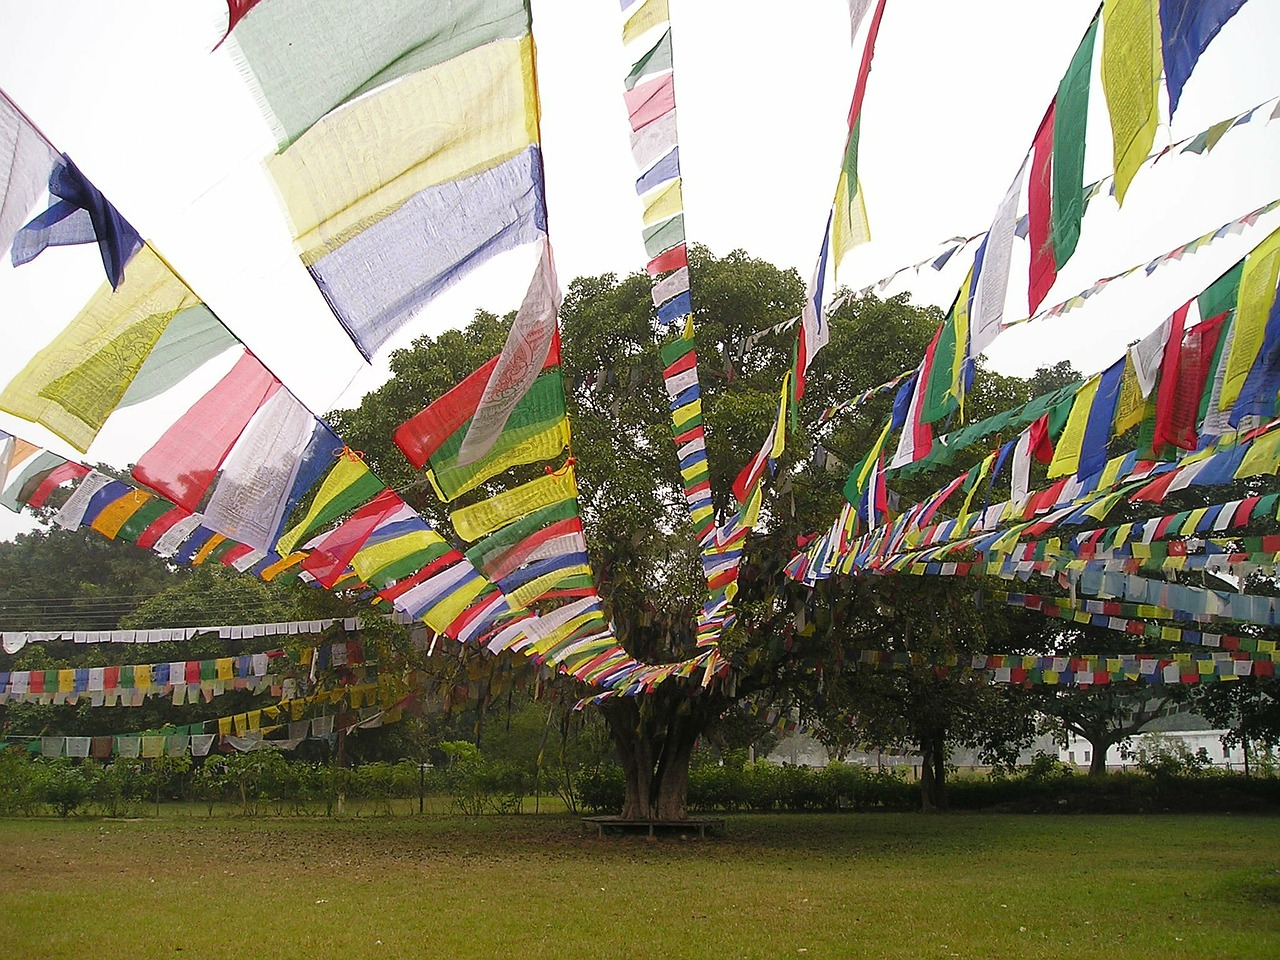 prayer flags,buddhism,lumpini,nepal,free pictures, free photos, free images, royalty free, free illustrations, public domain